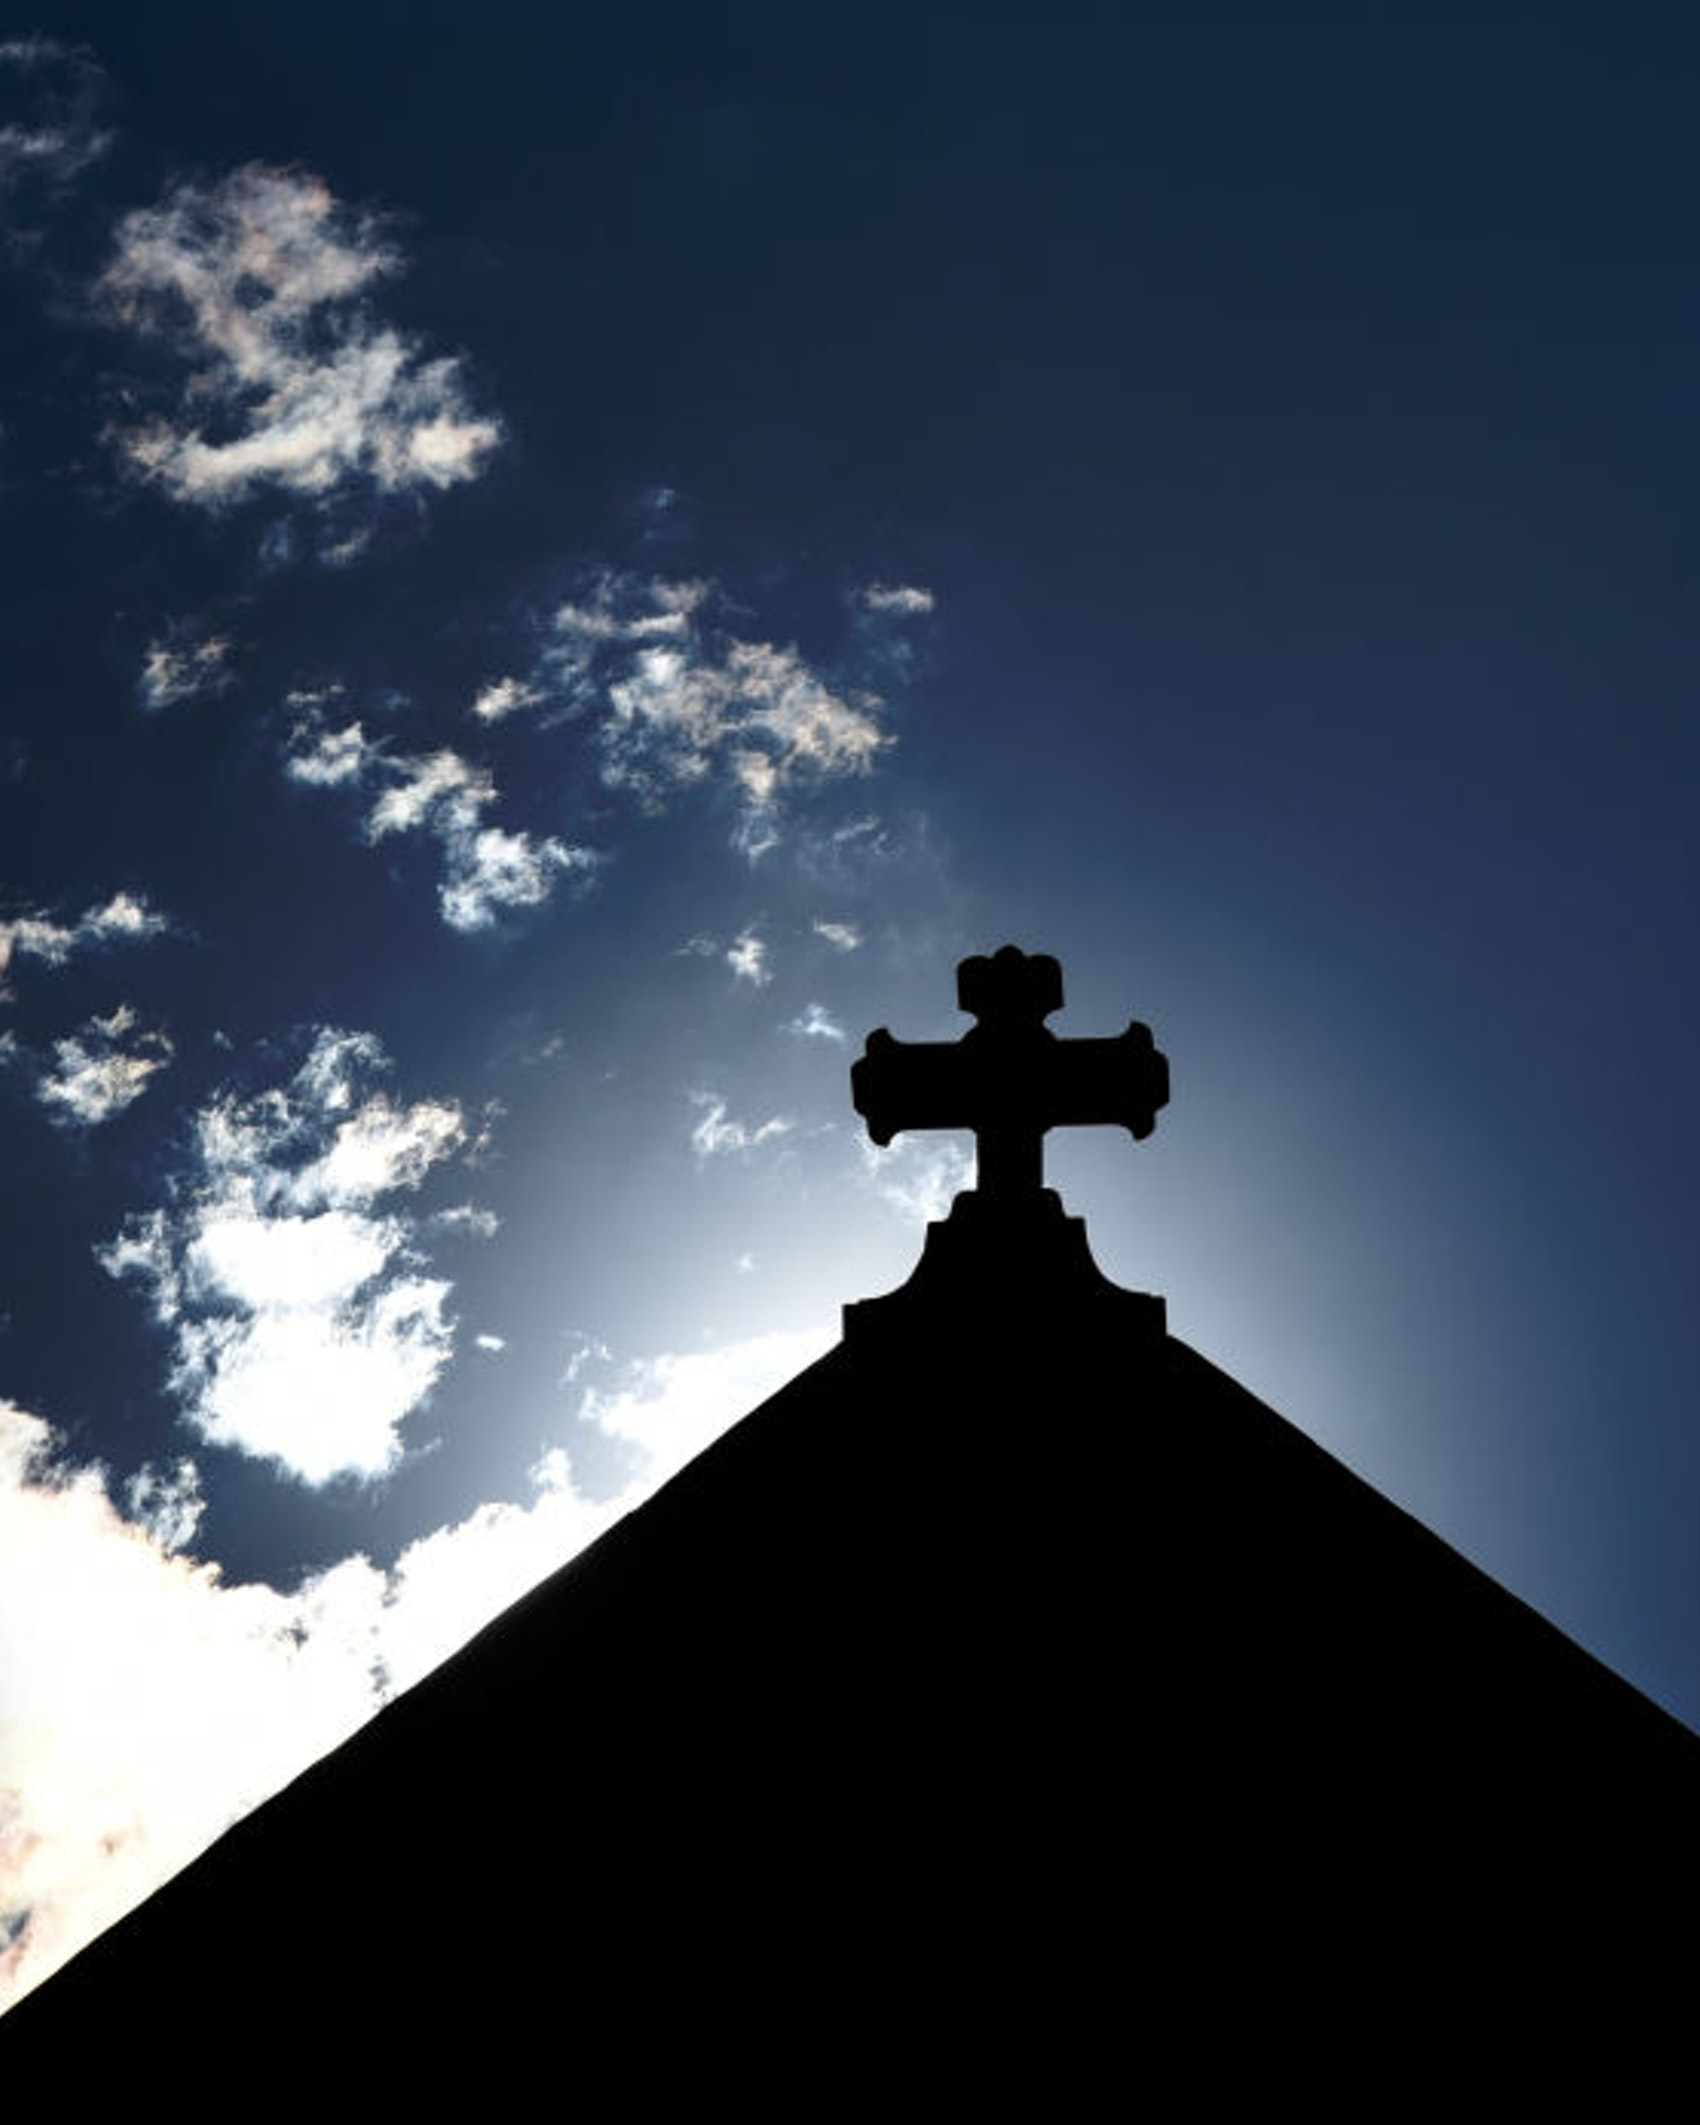 SANTA FE, NEW MEXICO - AUGUST 17, 2019: The morning sun rises behind a cross atop a Catholic church in Santa Fe, Newico. (Photo by Robert Alexander/Getty Images)